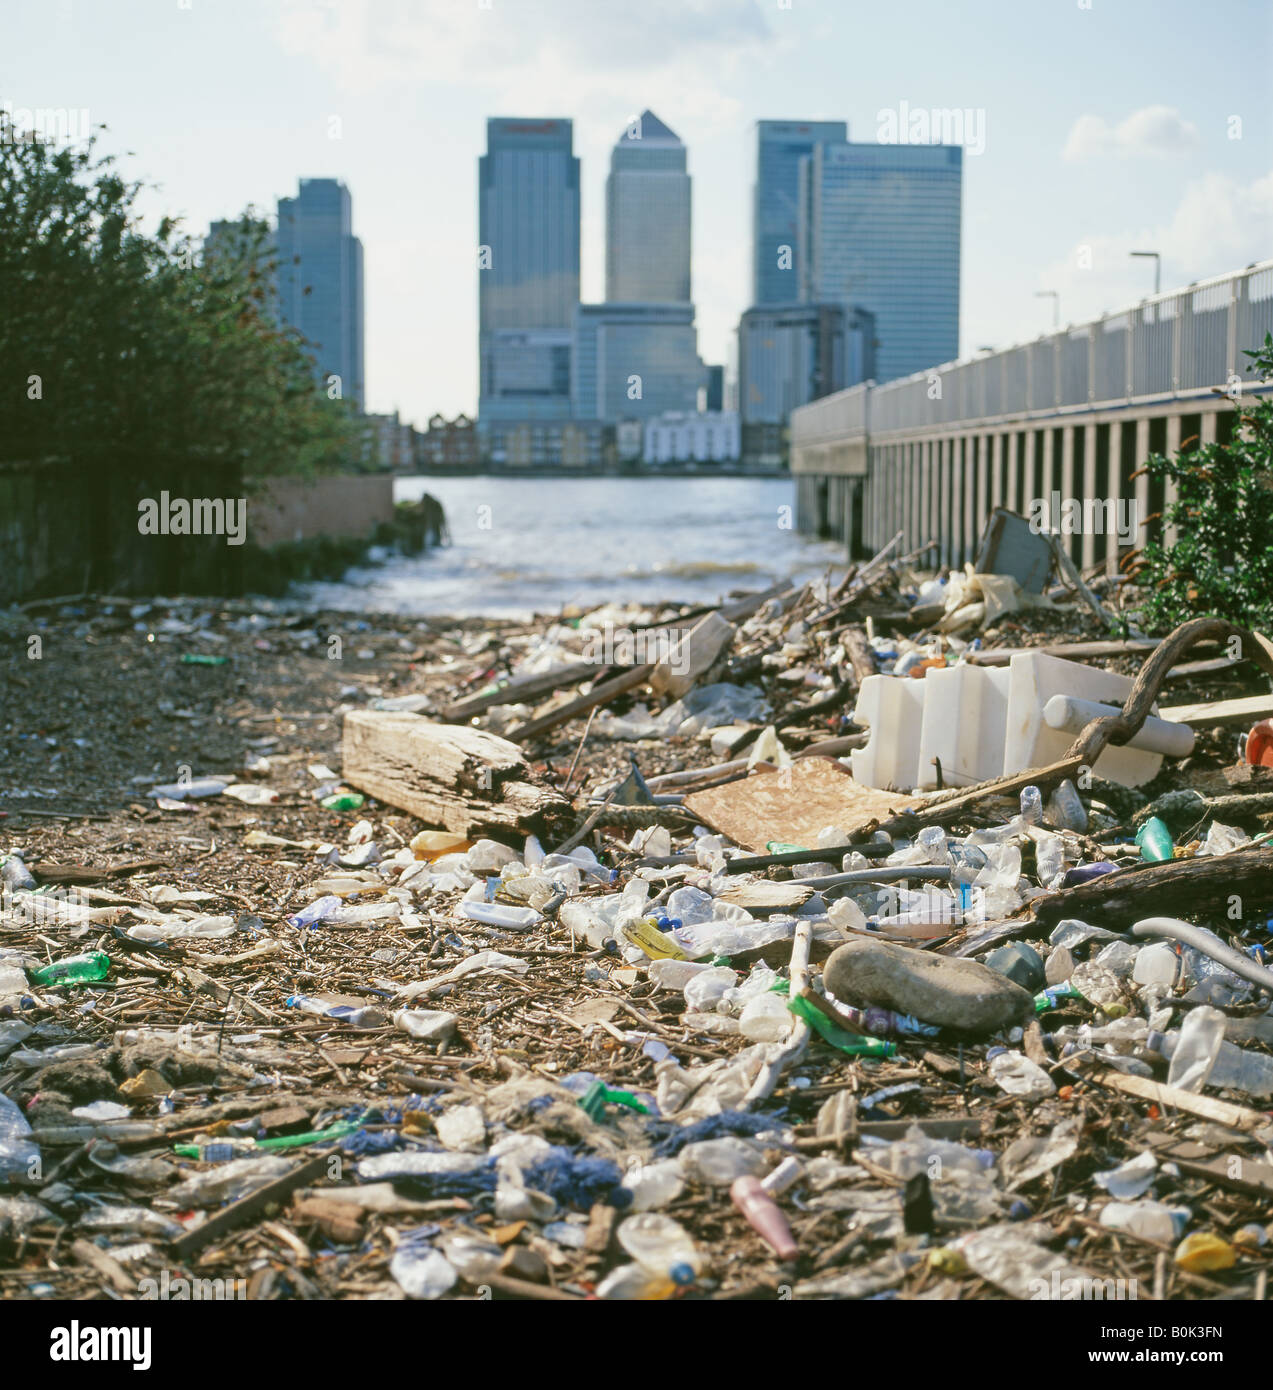 Environmental plastic pollution on the Greenwich side of the River Thames with view of Canary Wharf, banks & - Stock Image